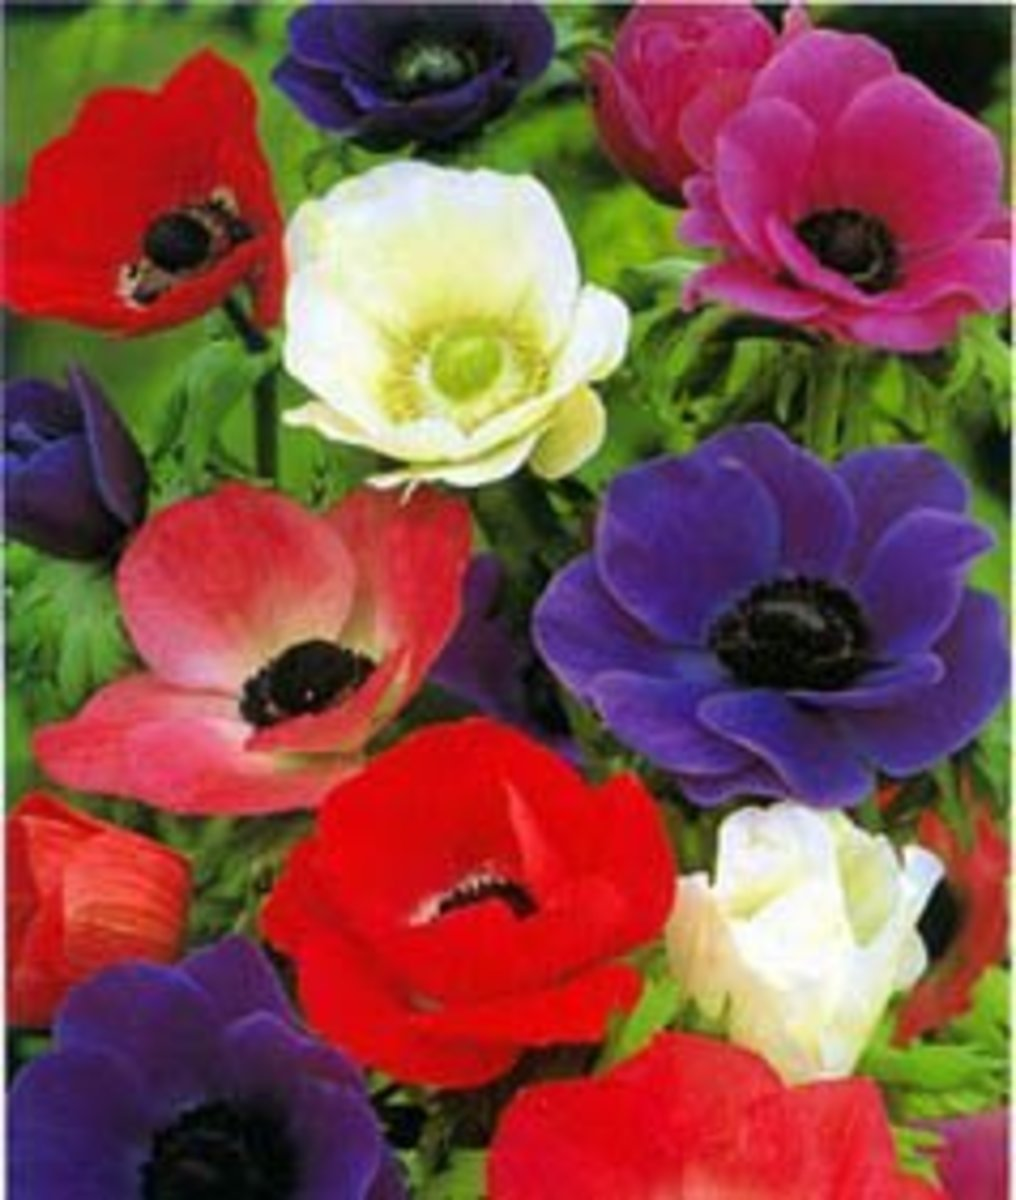 Anemone, the beautiful wind-flower: tips and legends